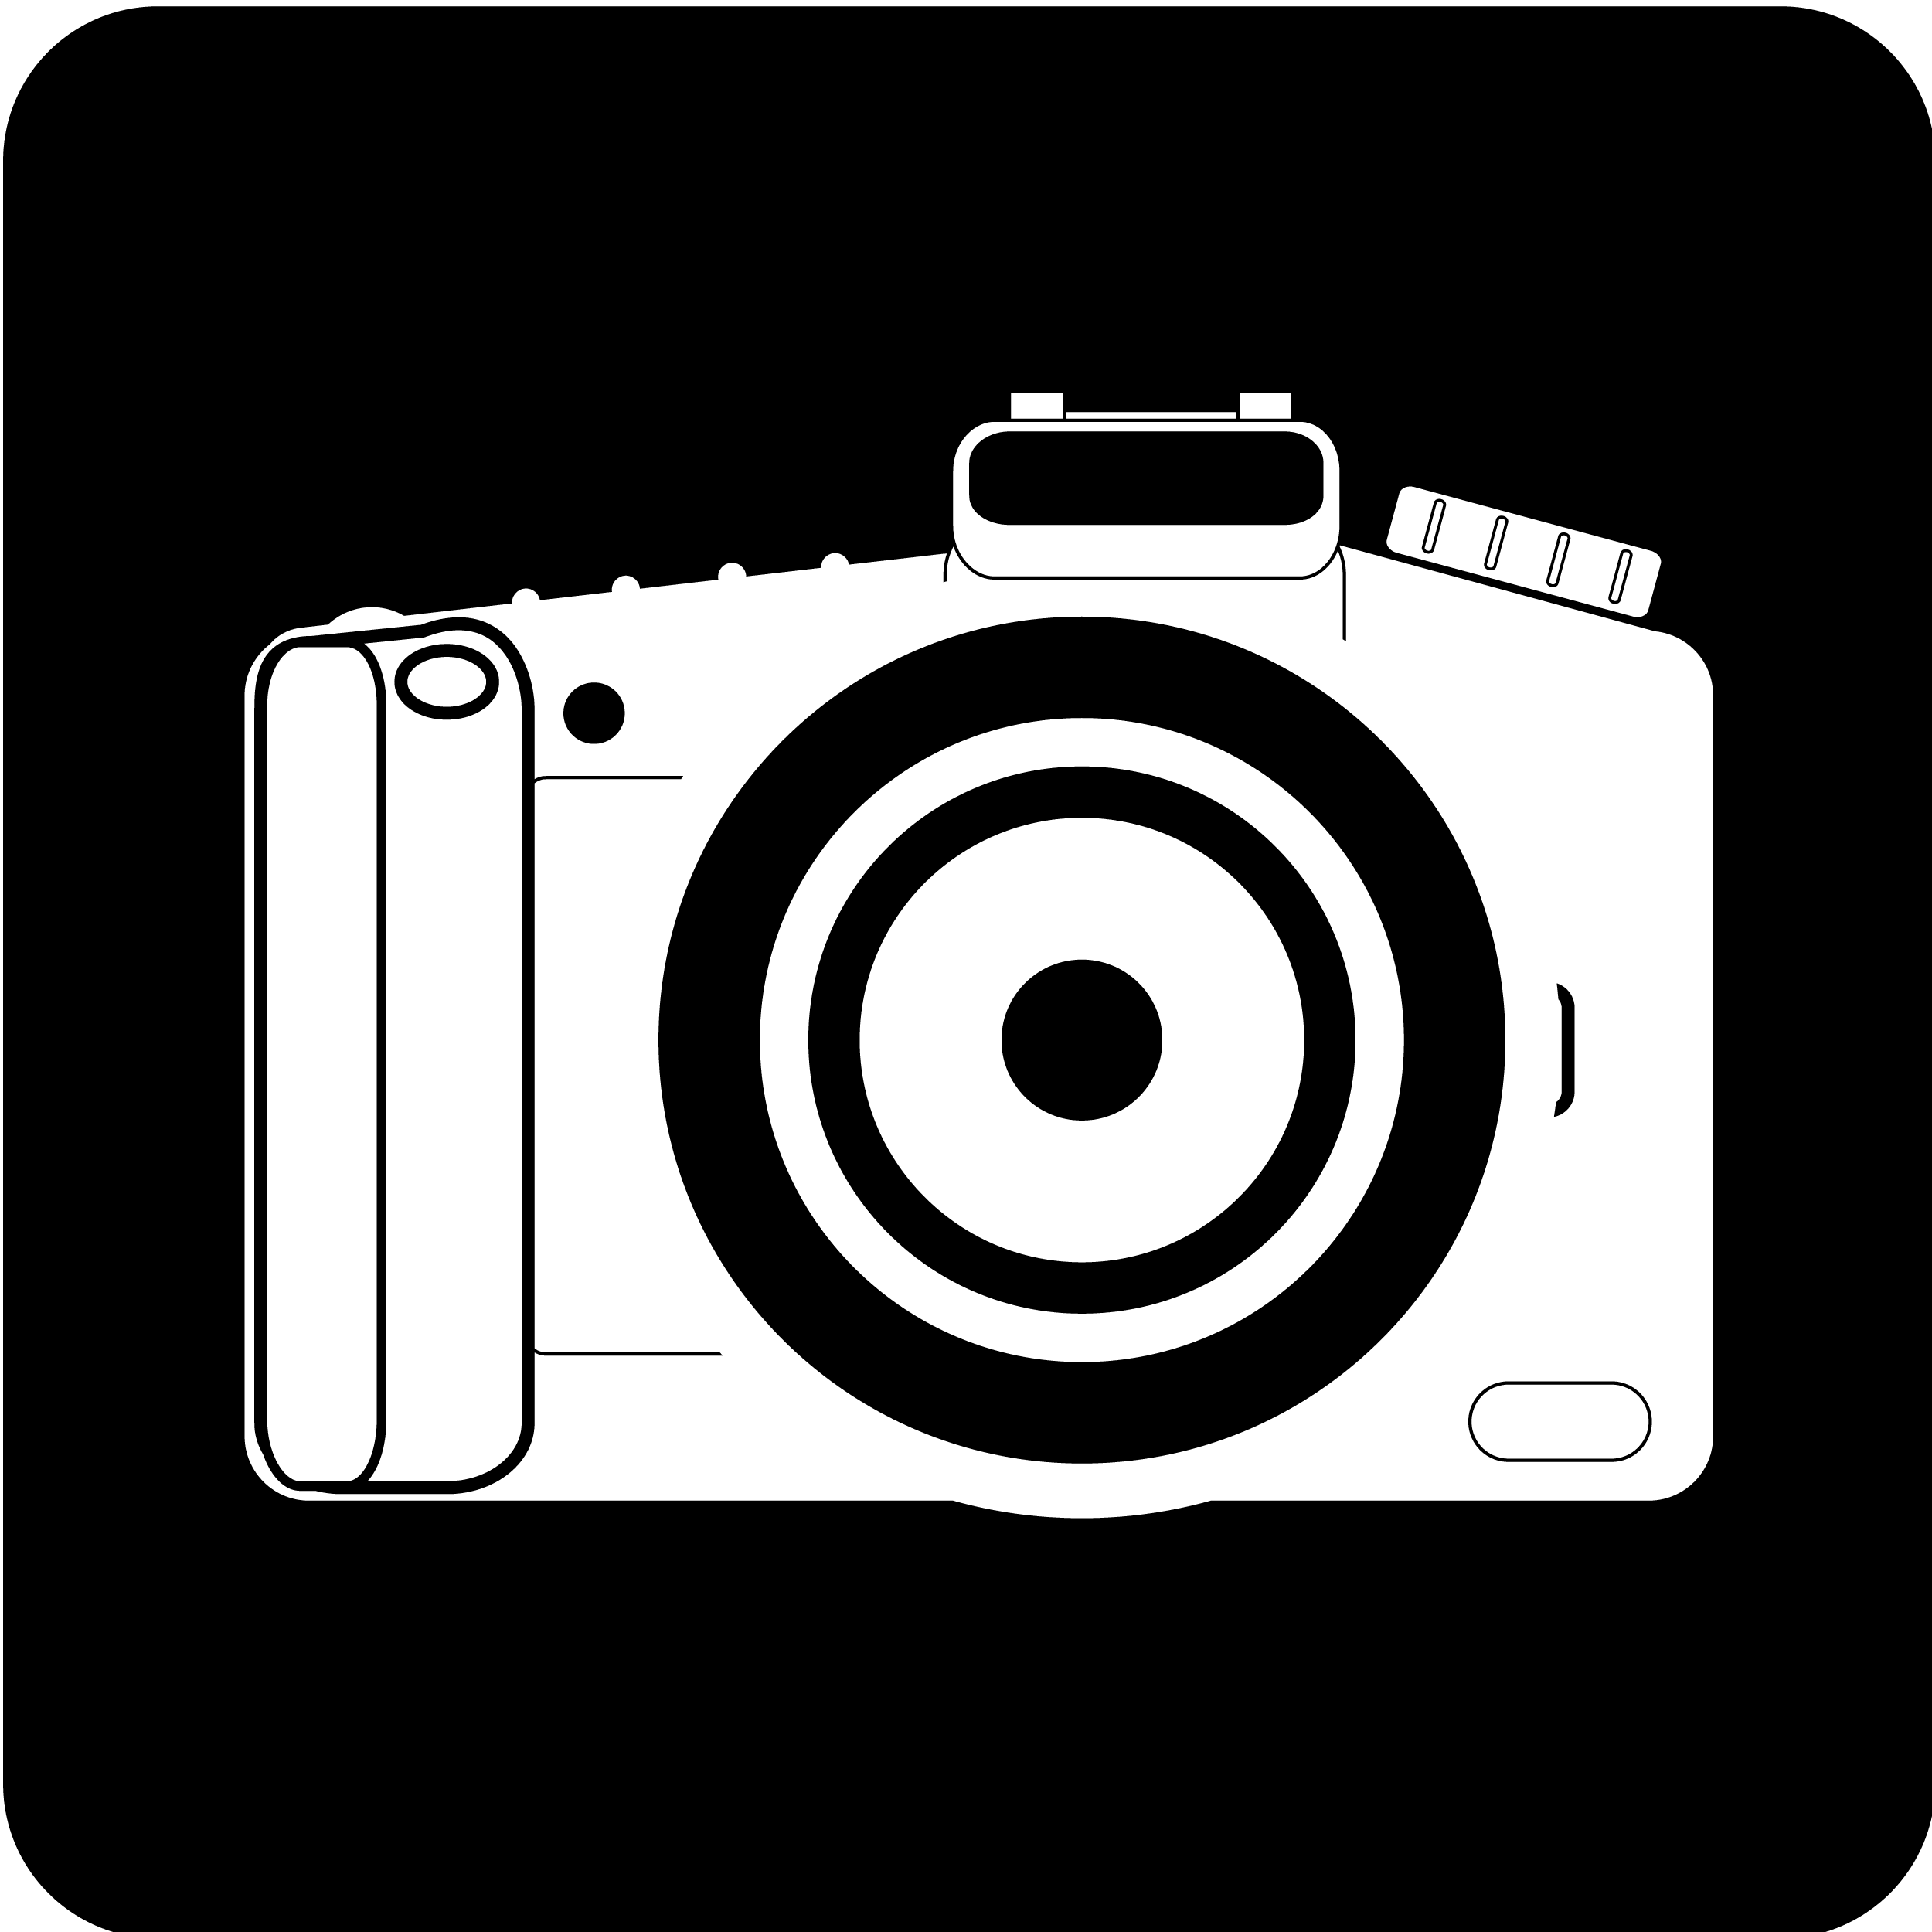 digital camera silhouette at getdrawings com free for personal use rh getdrawings com